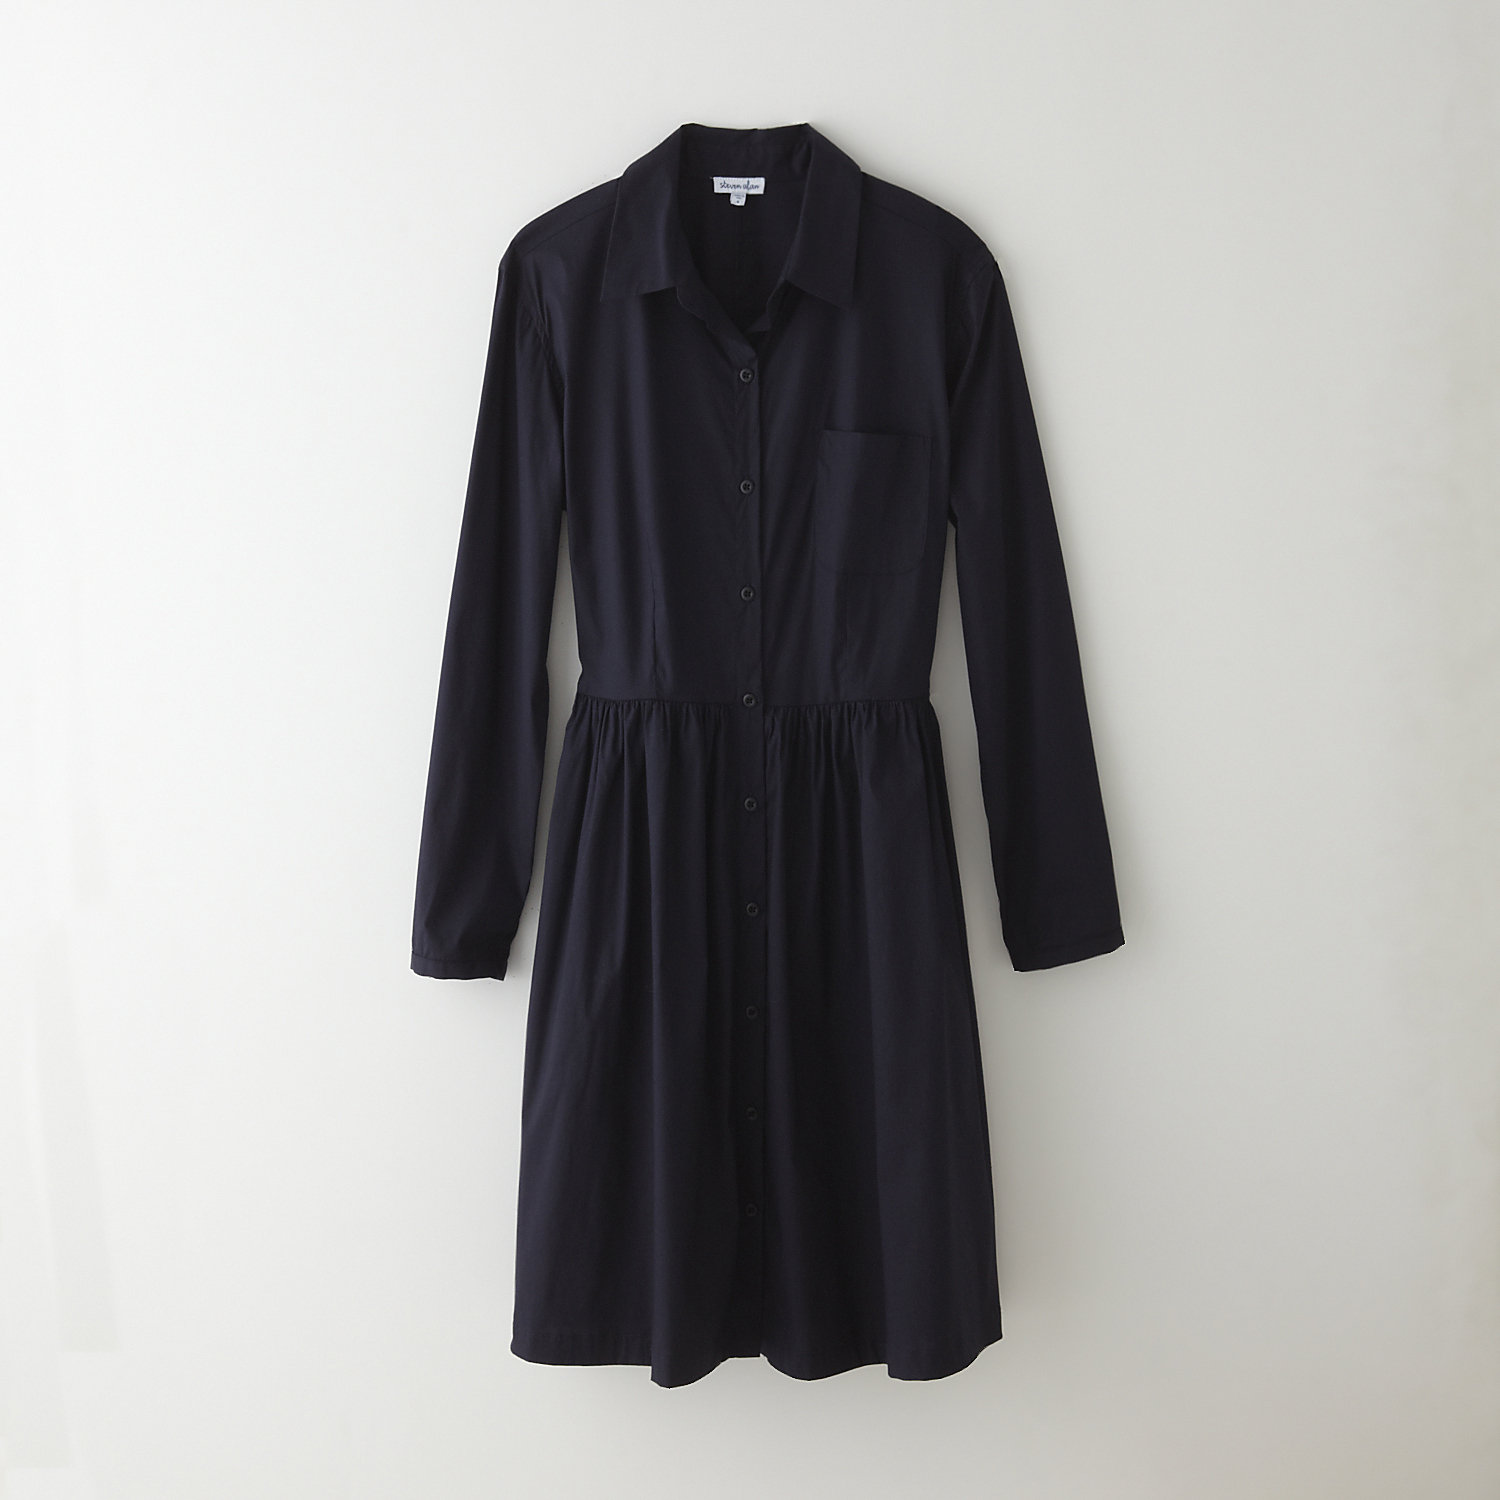 LONG SLEEVE SADIE DRESS